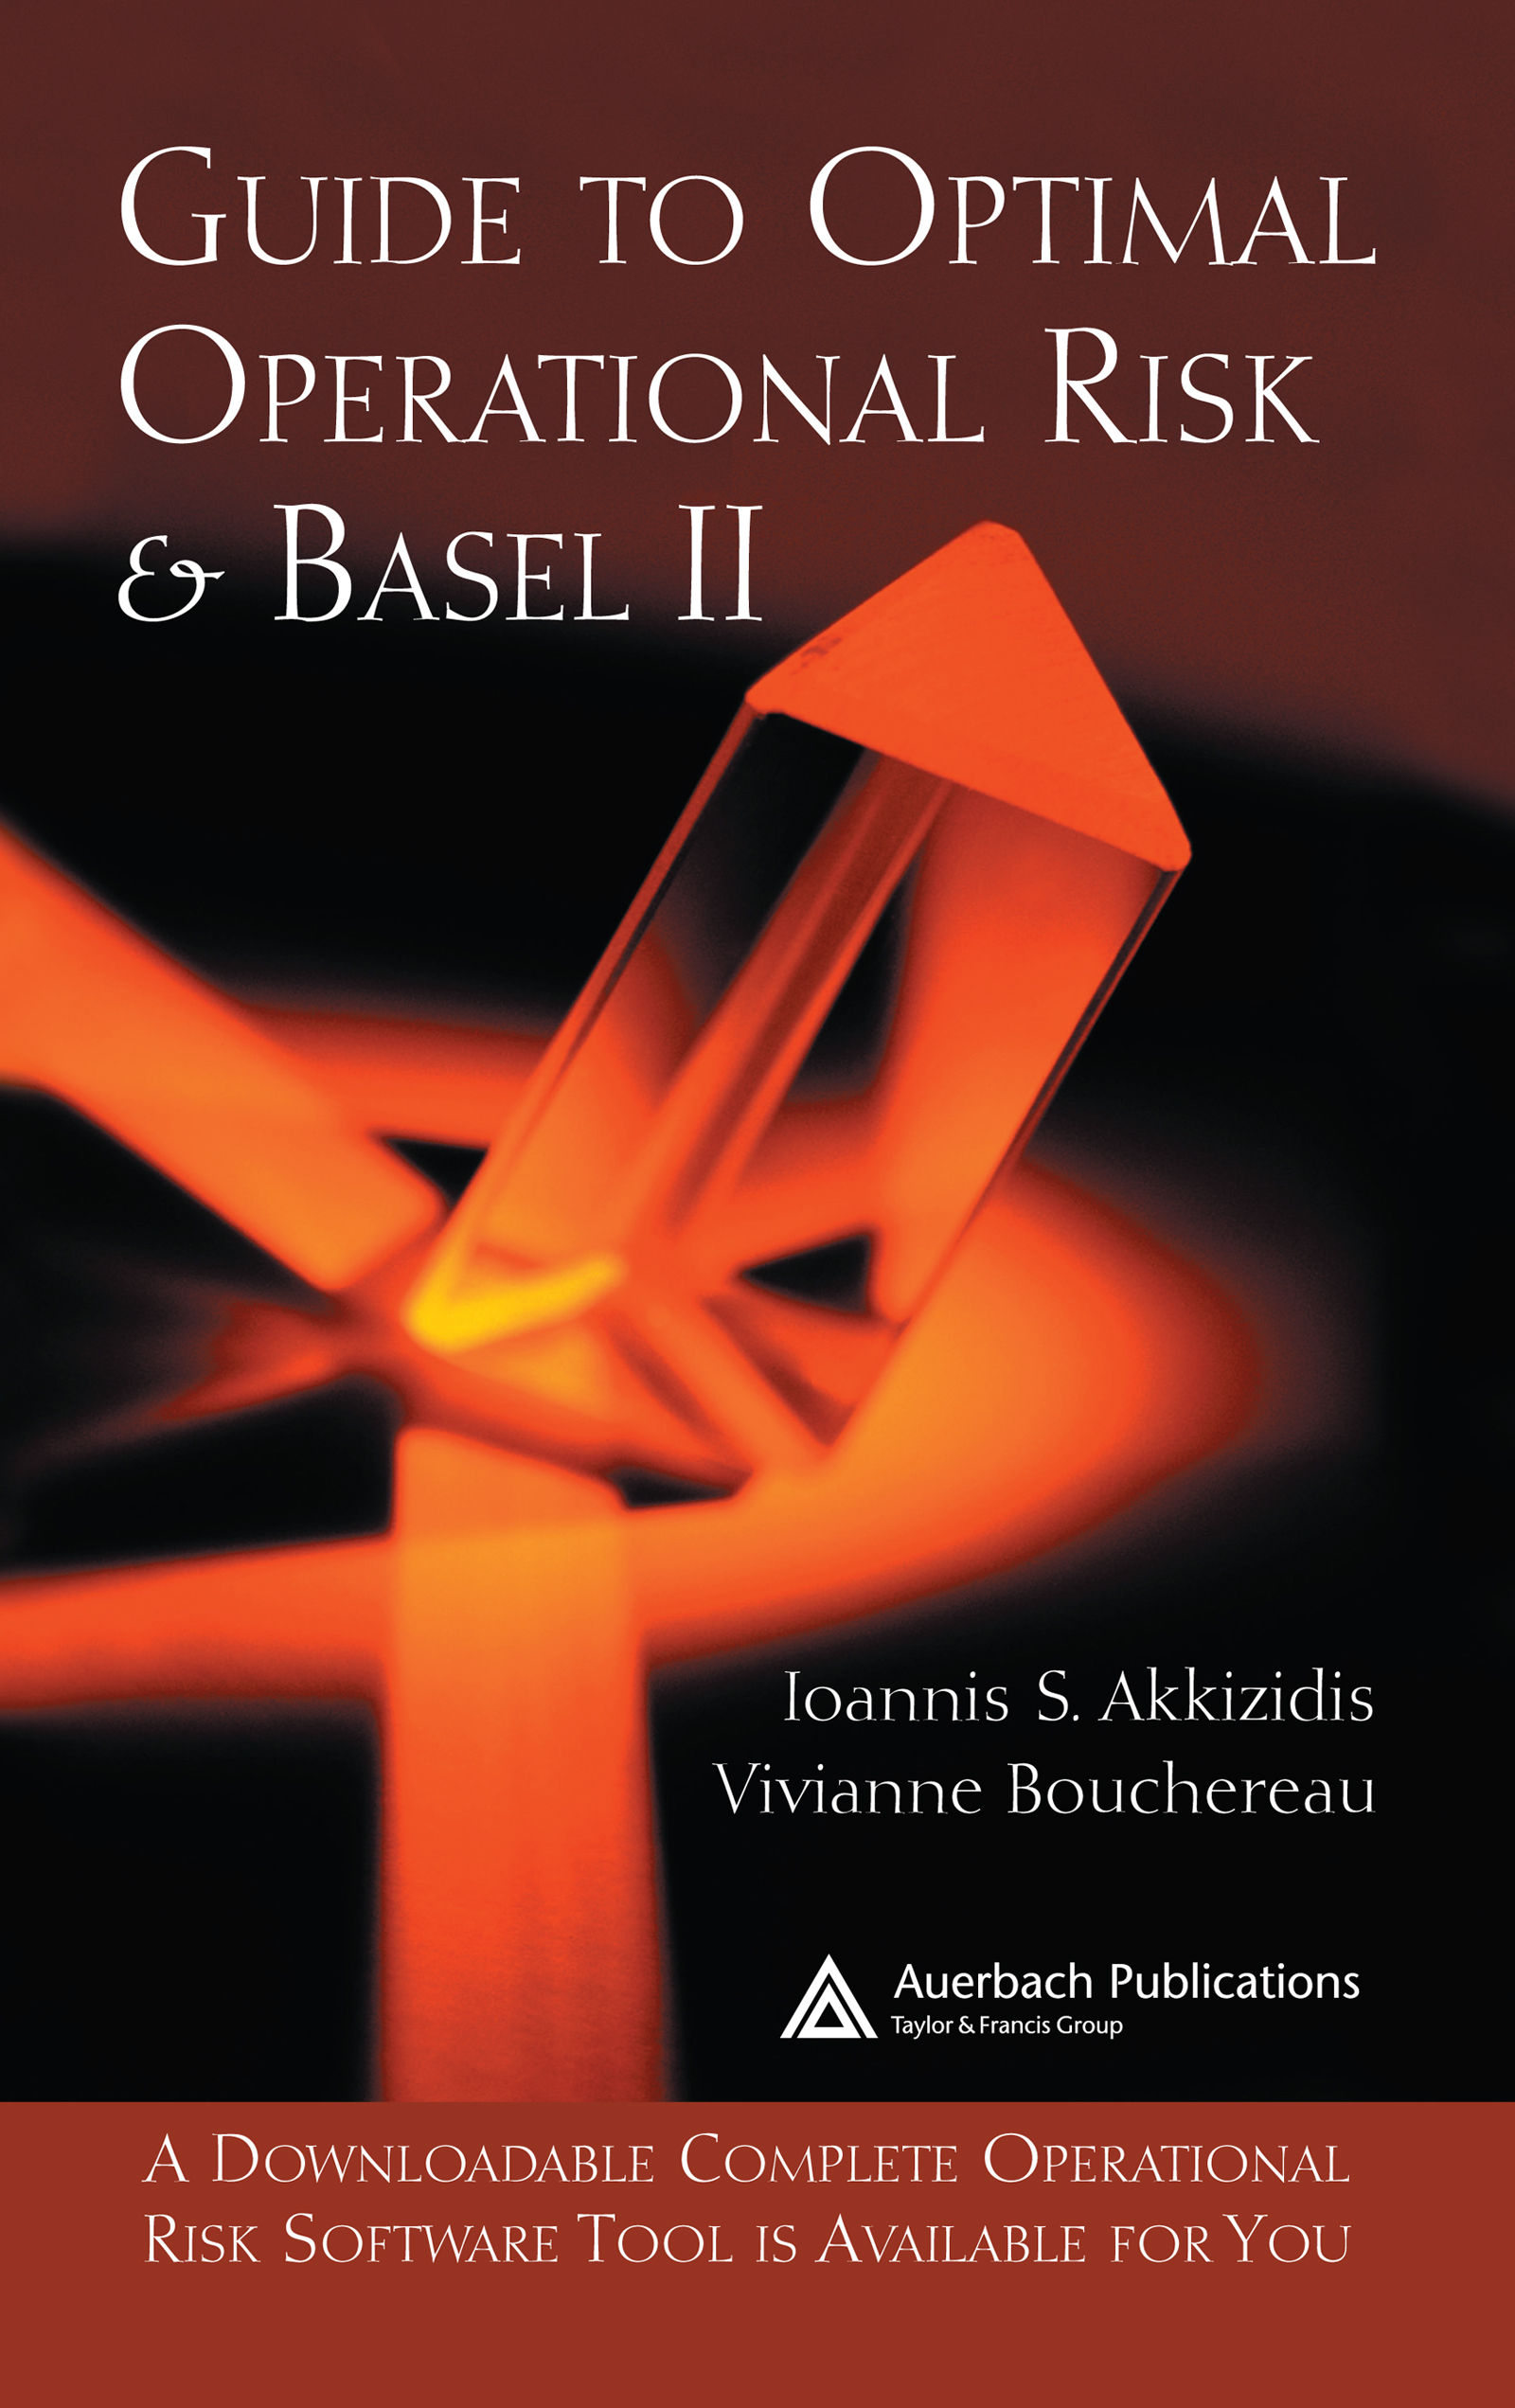 Download Ebook Guide to Optimal Operational Risk and BASEL II by Ioannis S. Akkizidis Pdf